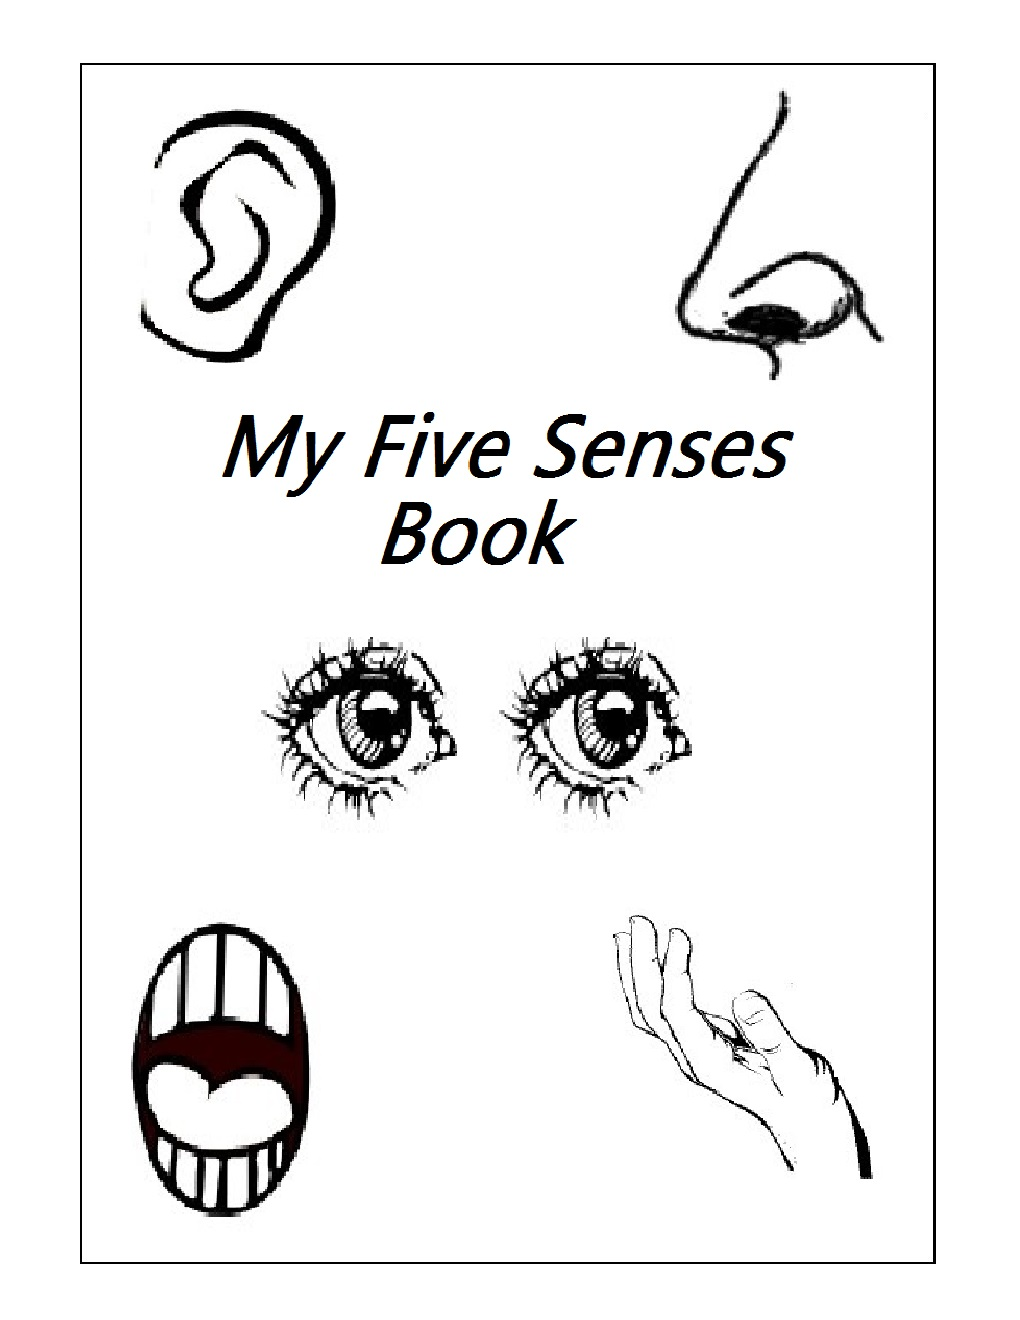 math worksheet : kindergarten worksheets january 2016 : 5 Senses Worksheet For Kindergarten